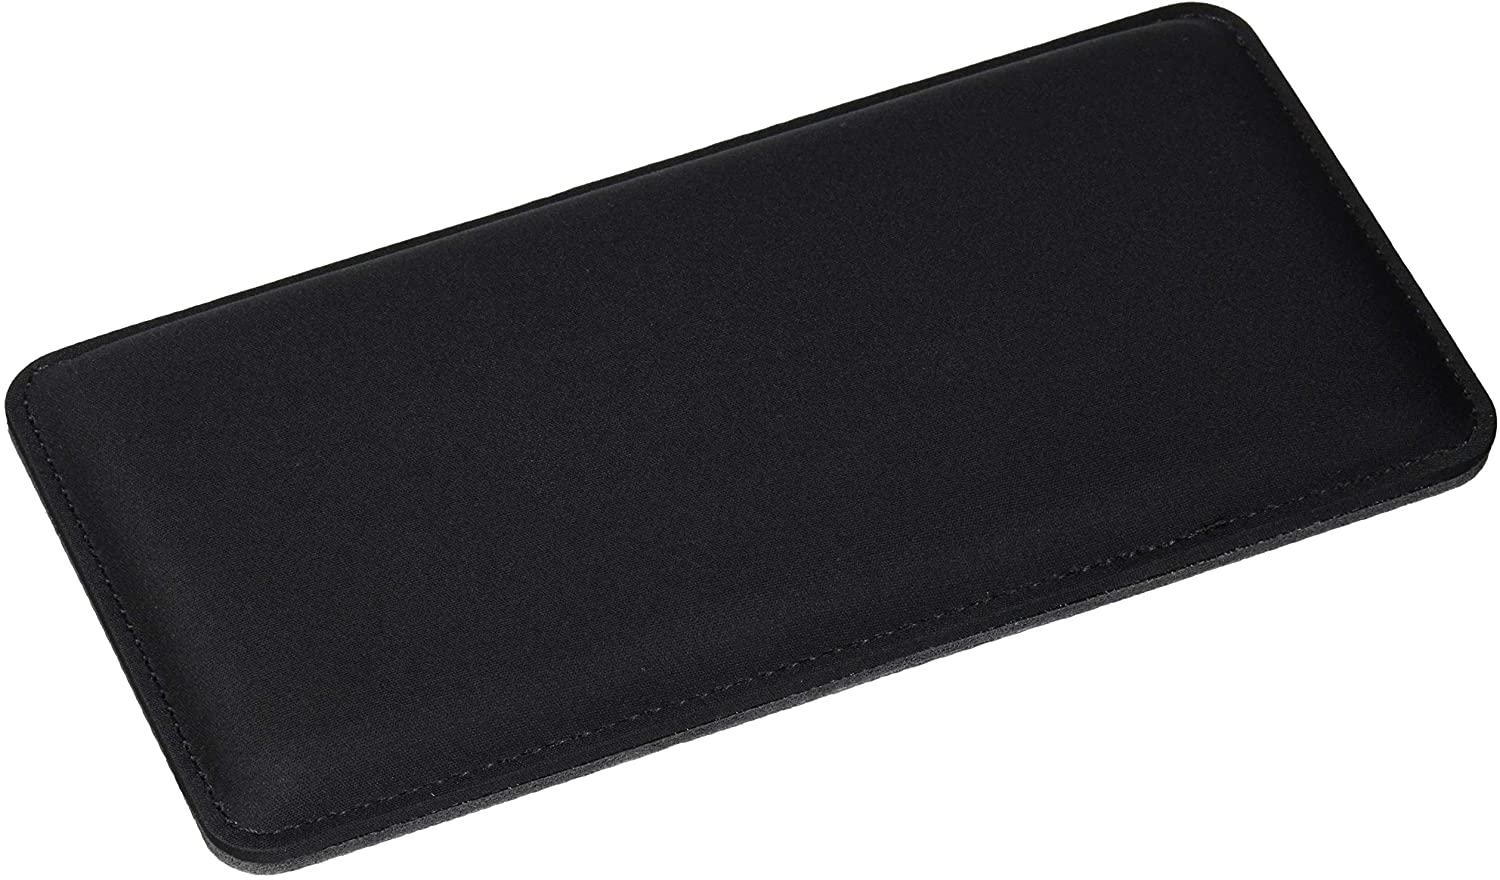 """The Gamer Plug - Gaming Mouse Wrist Rest Pad - Black - Stitched Edges - Memory Foam - 8"""" x 4"""" x 0.5"""" (Mouse, Slim)"""